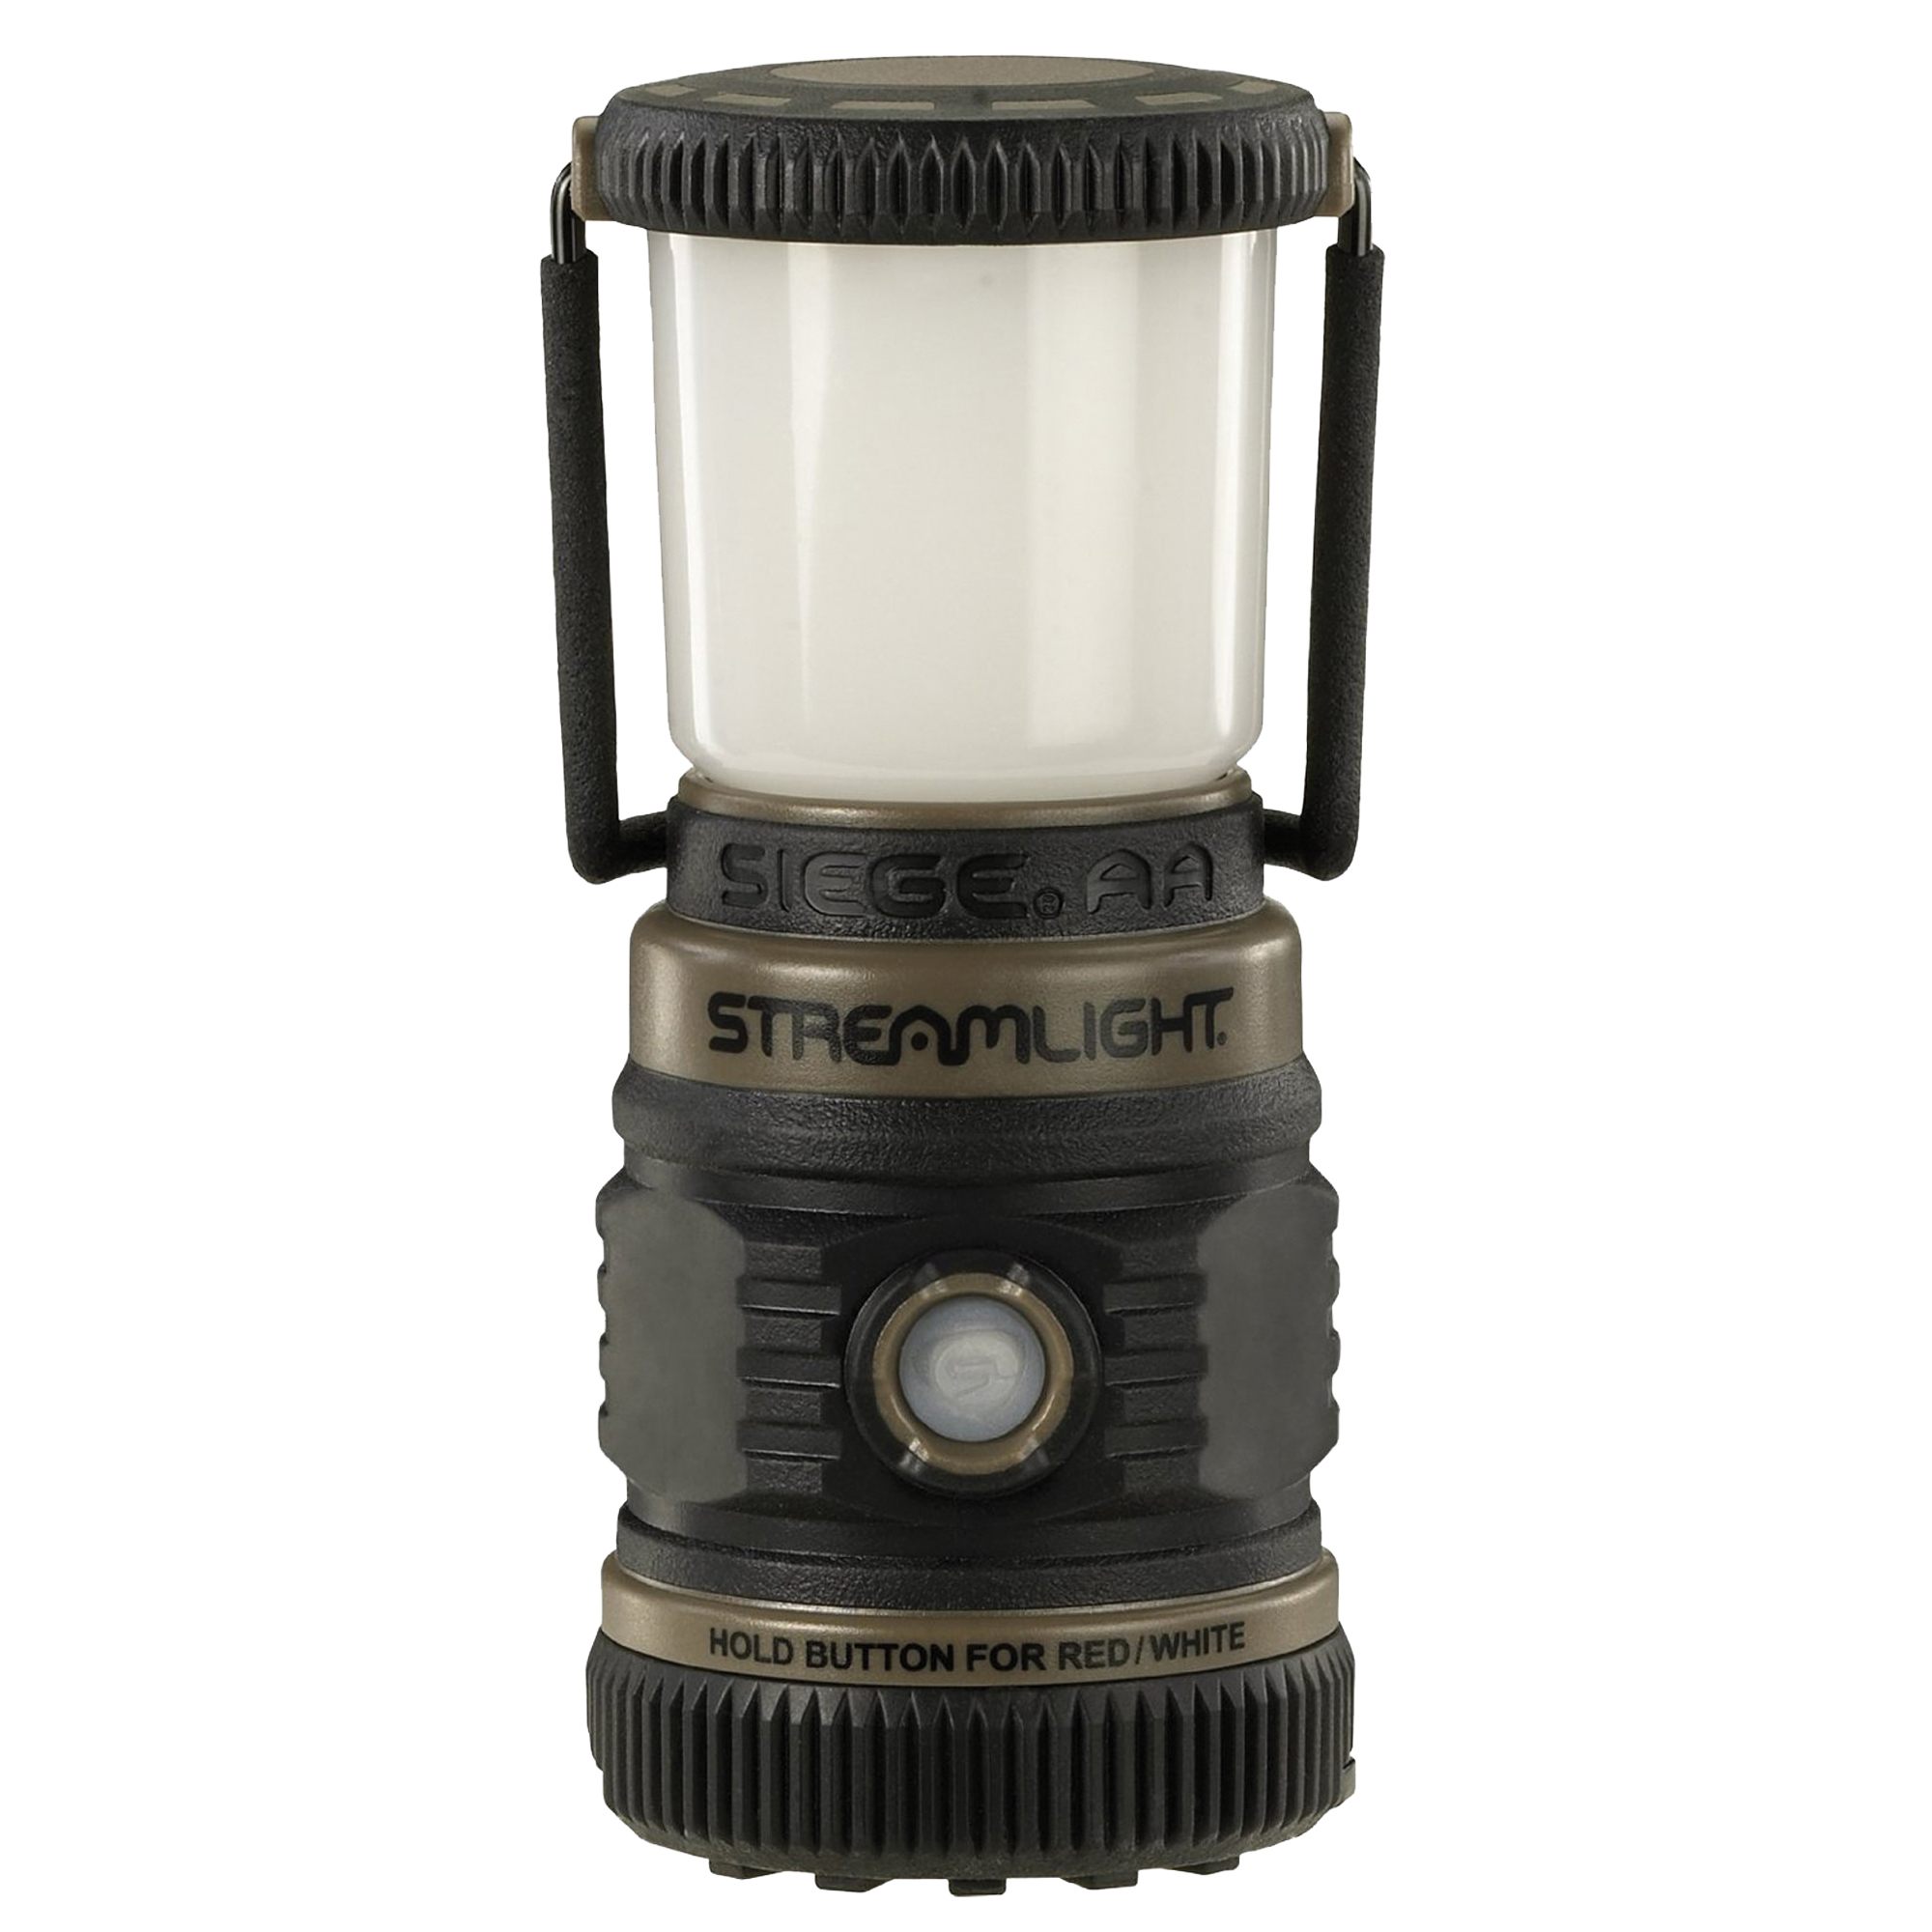 "Rugged"" cordless"" alkaline battery-powered lantern provides 360 degree of soft"" even light that illuminates a large area. Red and white light modes with a flash SOS mode."